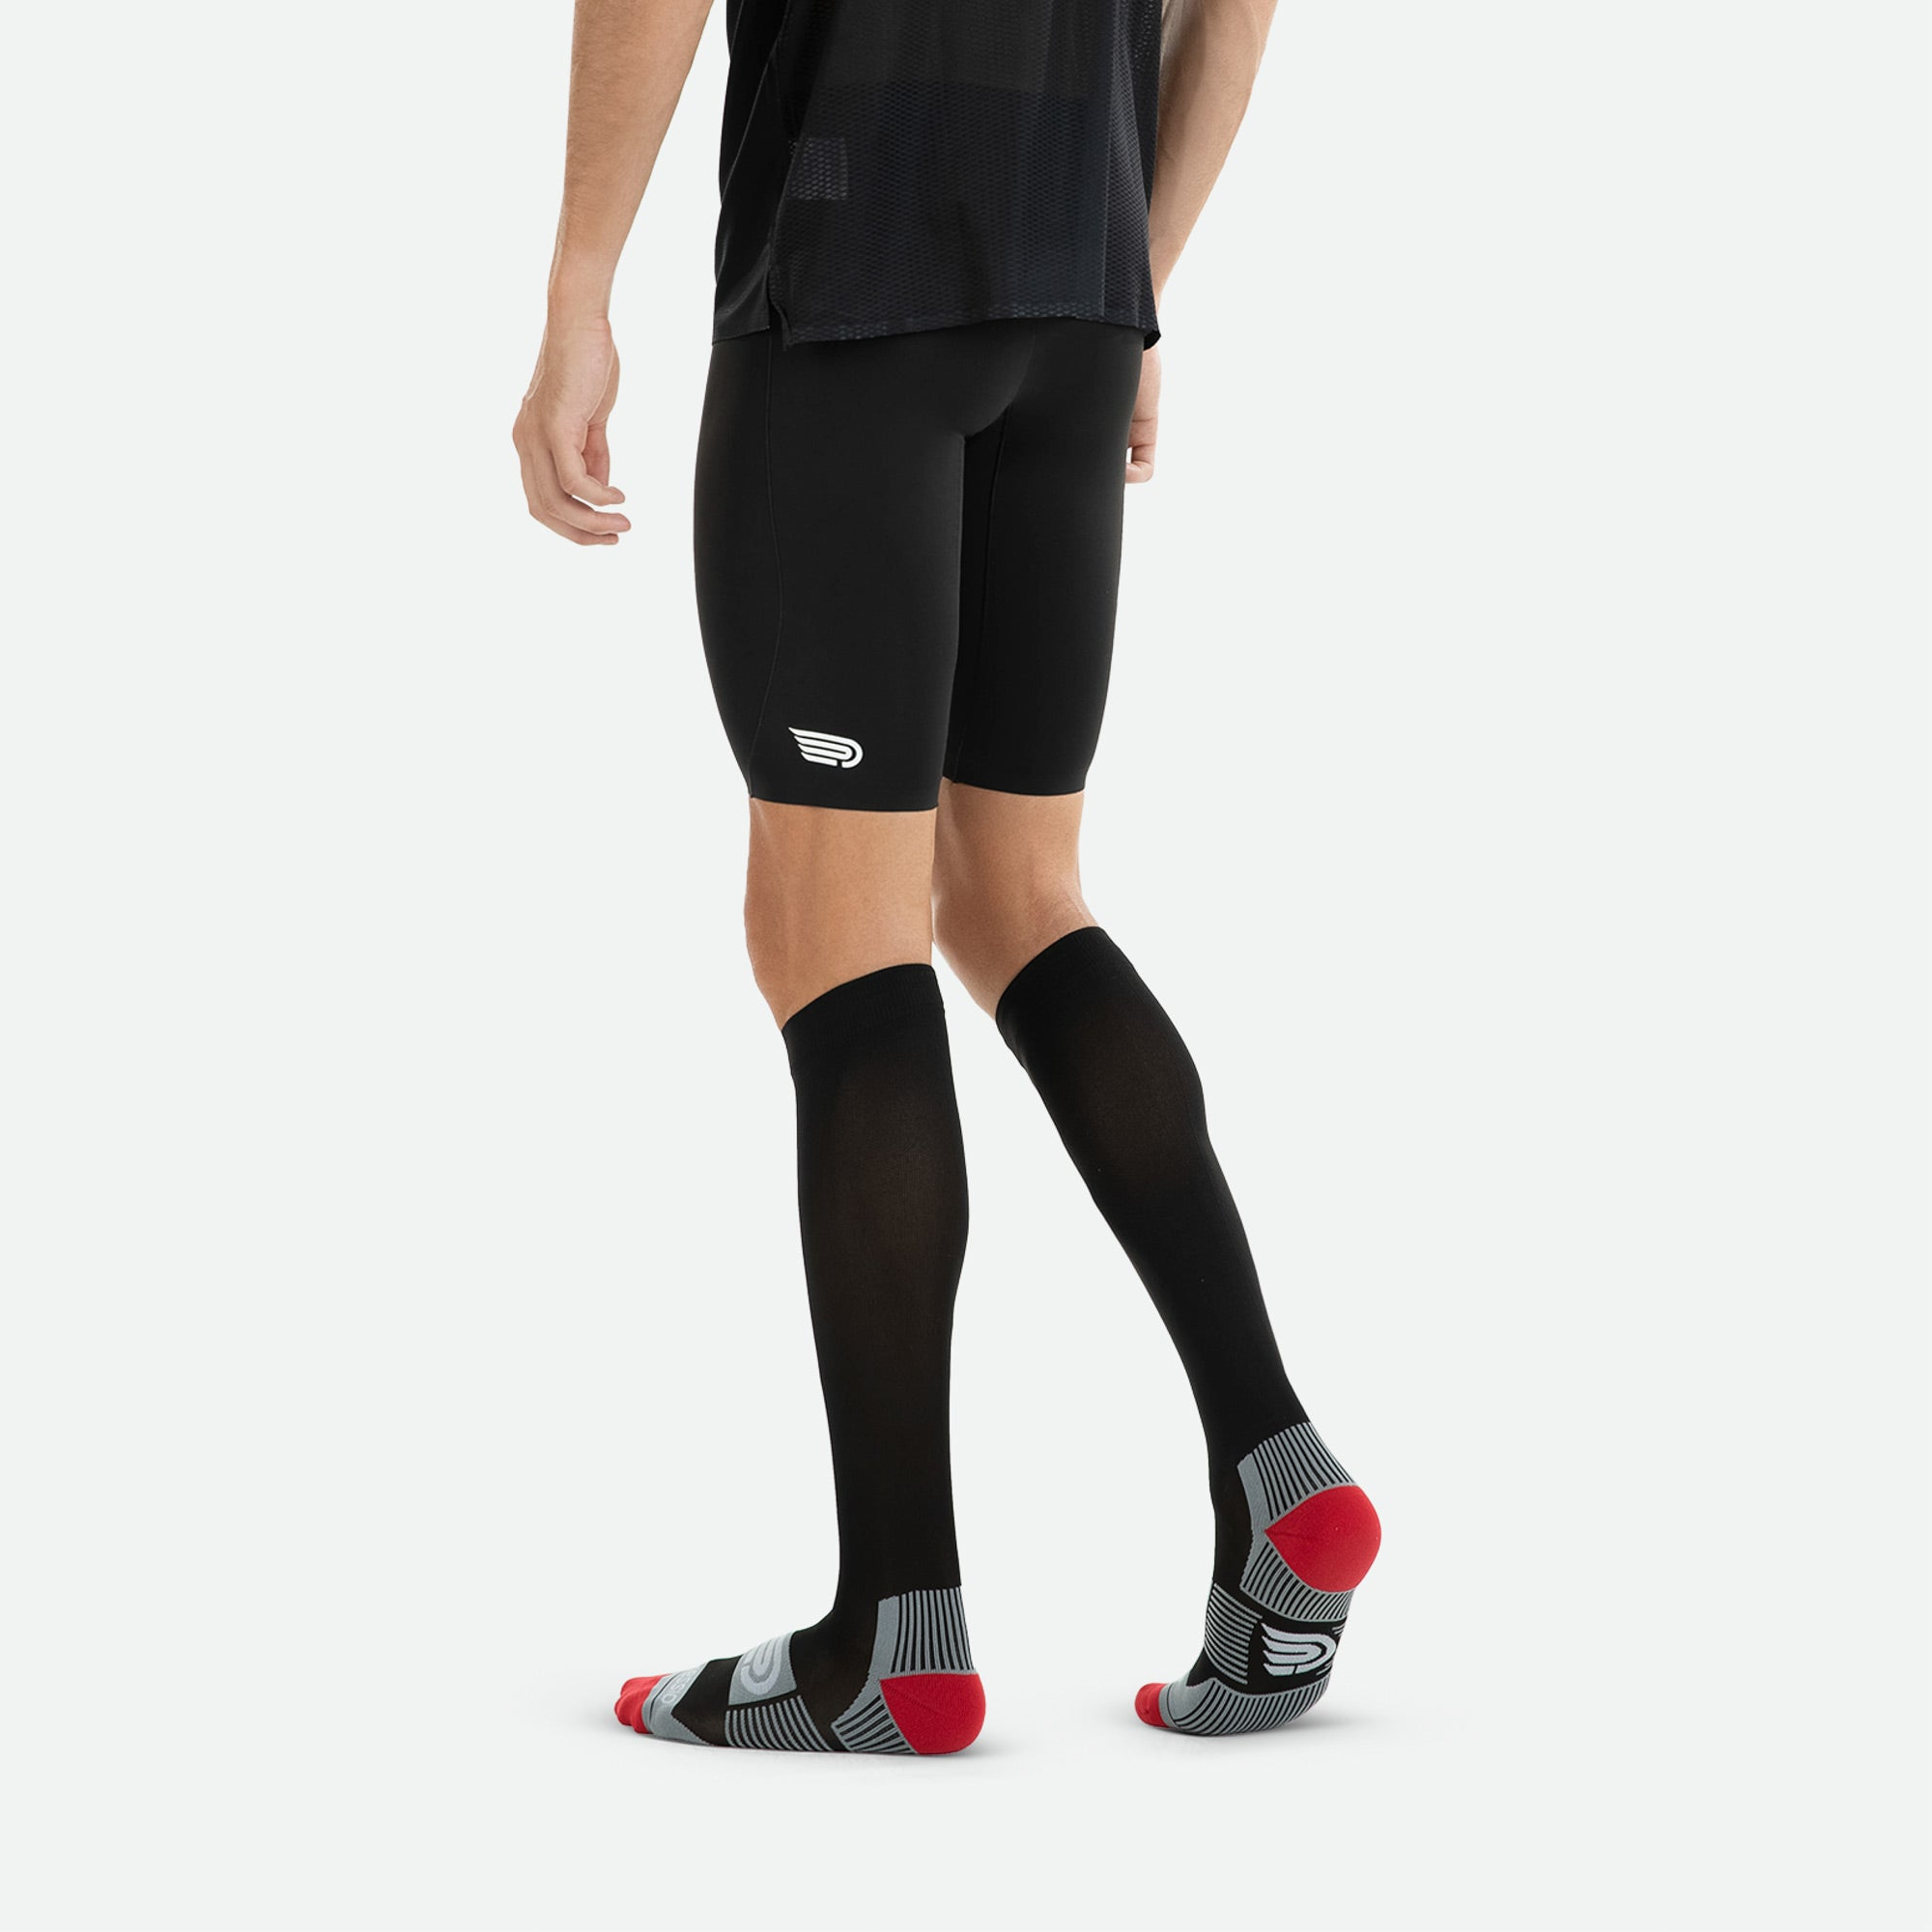 Pressio everyday unisex black compression sock knitted in Italy at a world-leading certified compression mill.